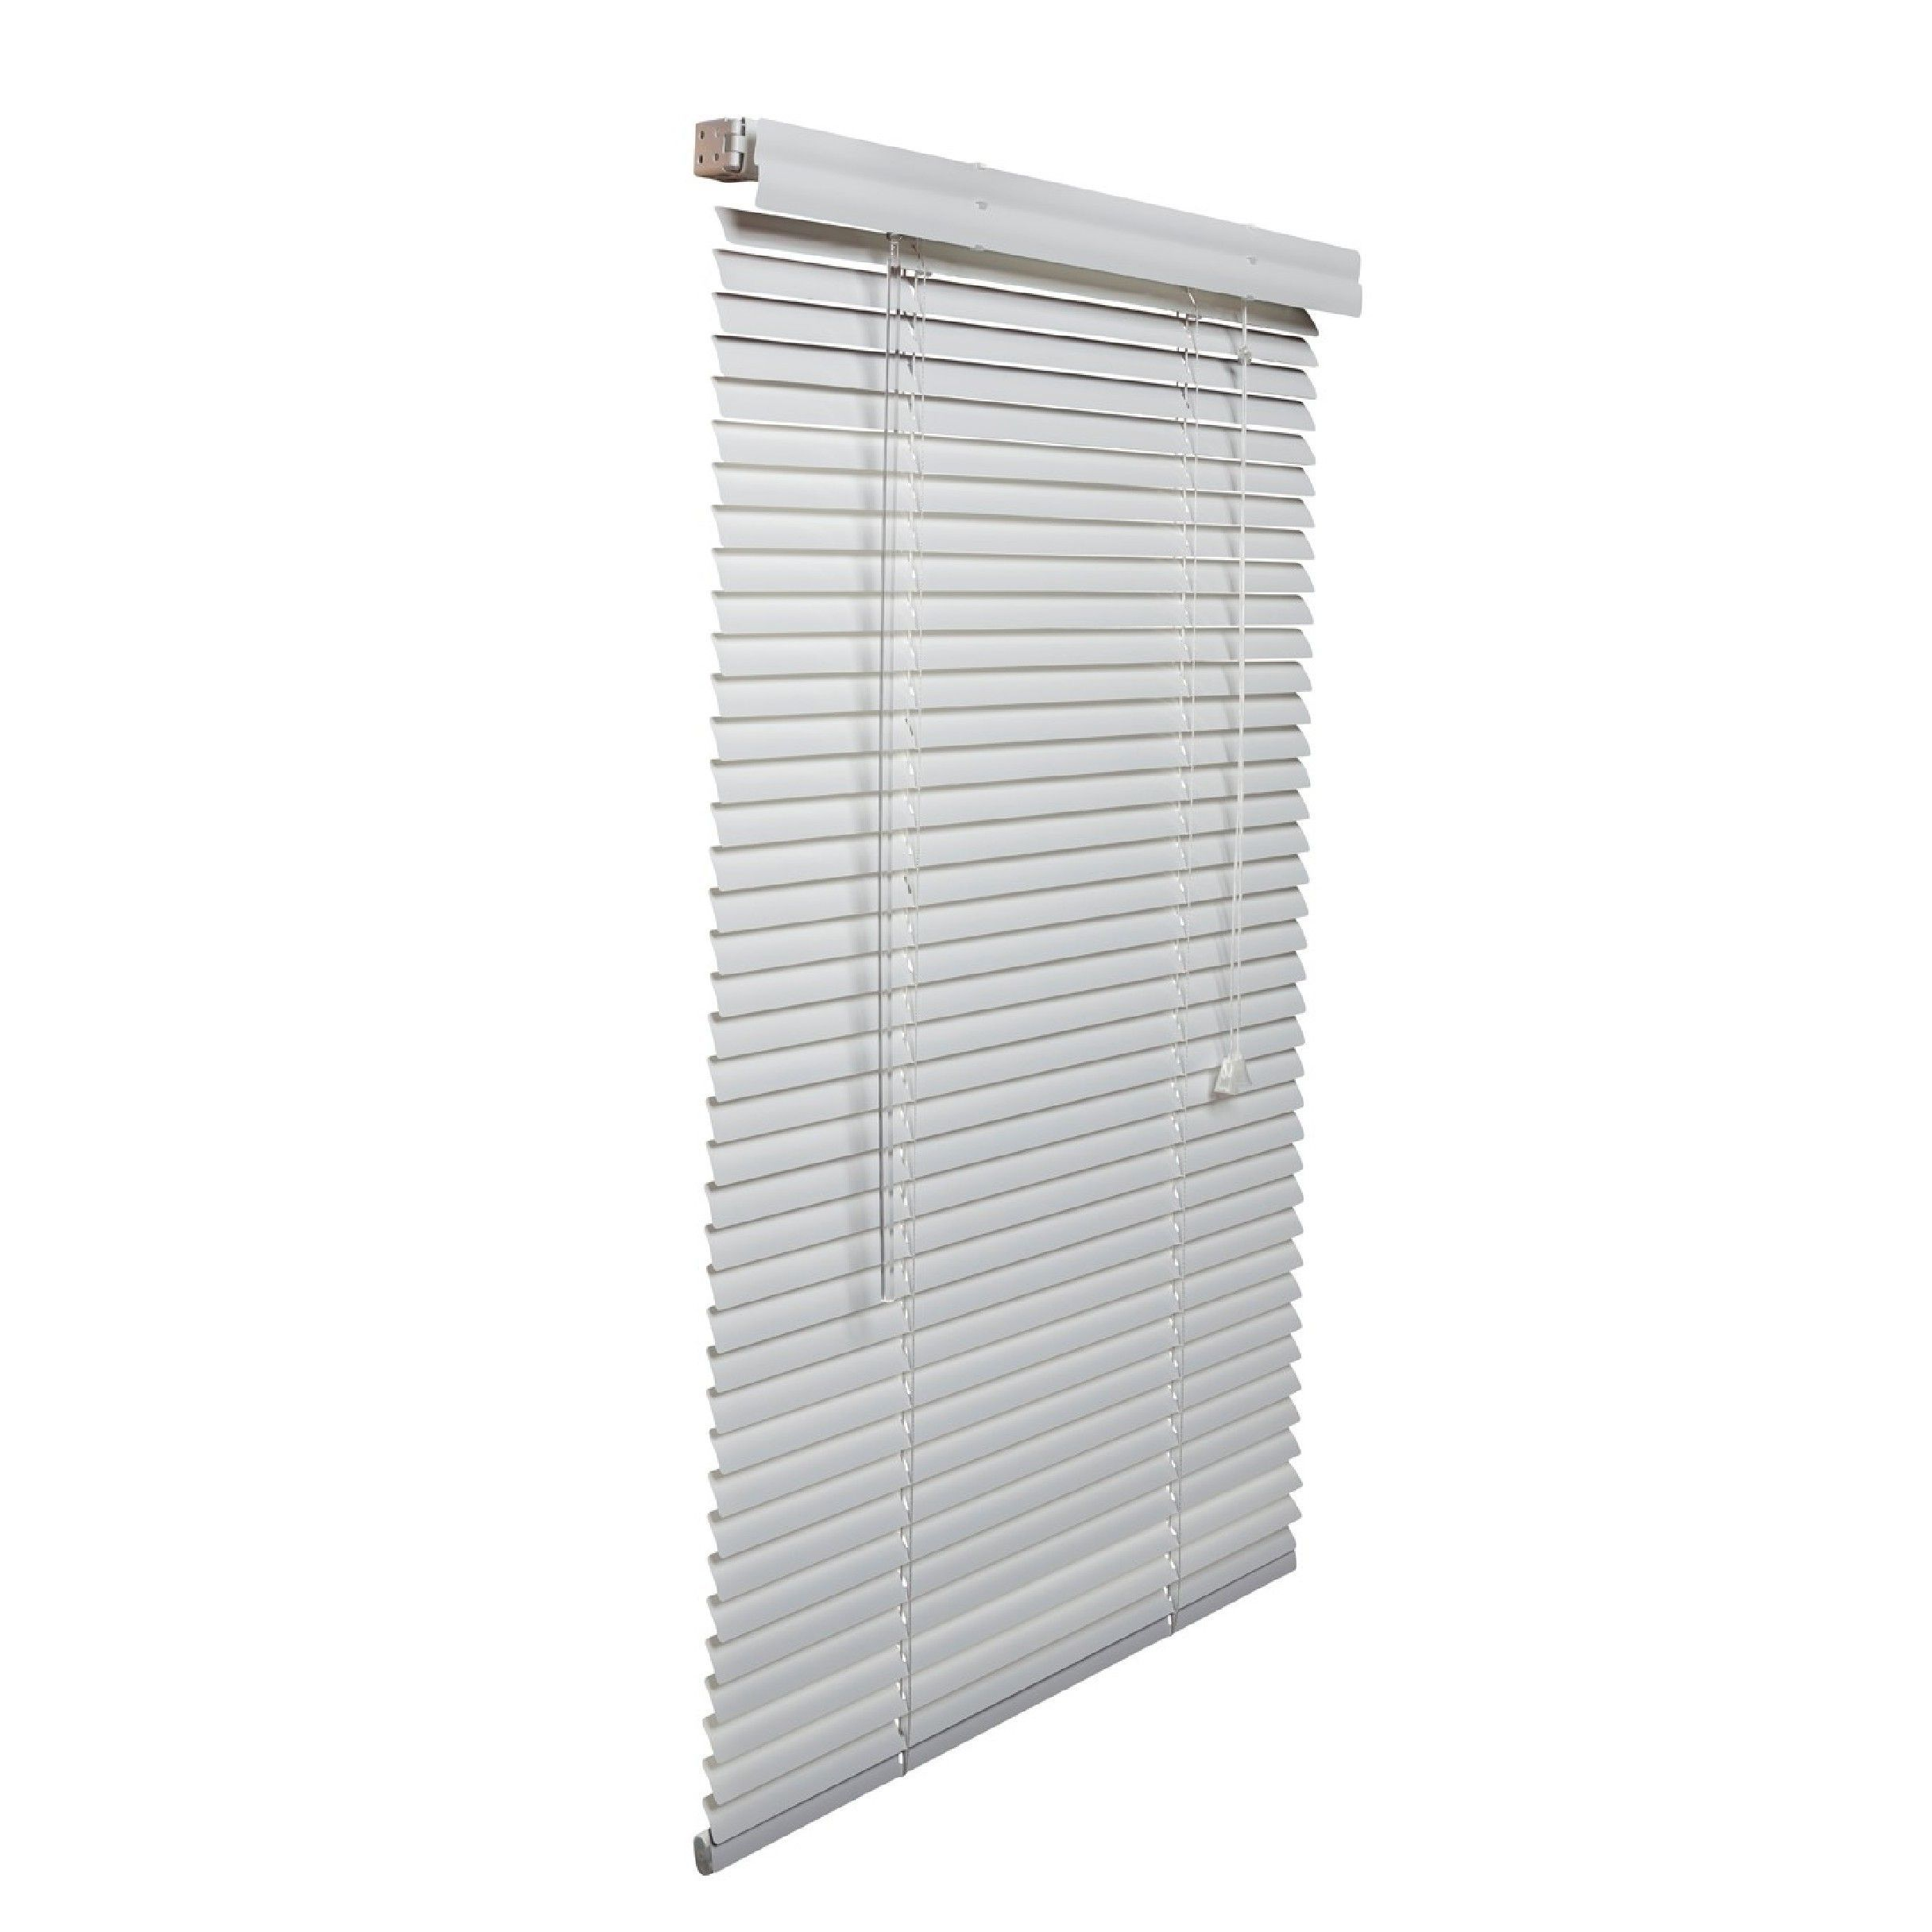 Lotus White Aluminum 1 Inch 22 To 30 Inches Wide Blinds White 30 1 2 Inches Wide X 72 Inches Long Aluminum Blinds Shades Blinds Blinds